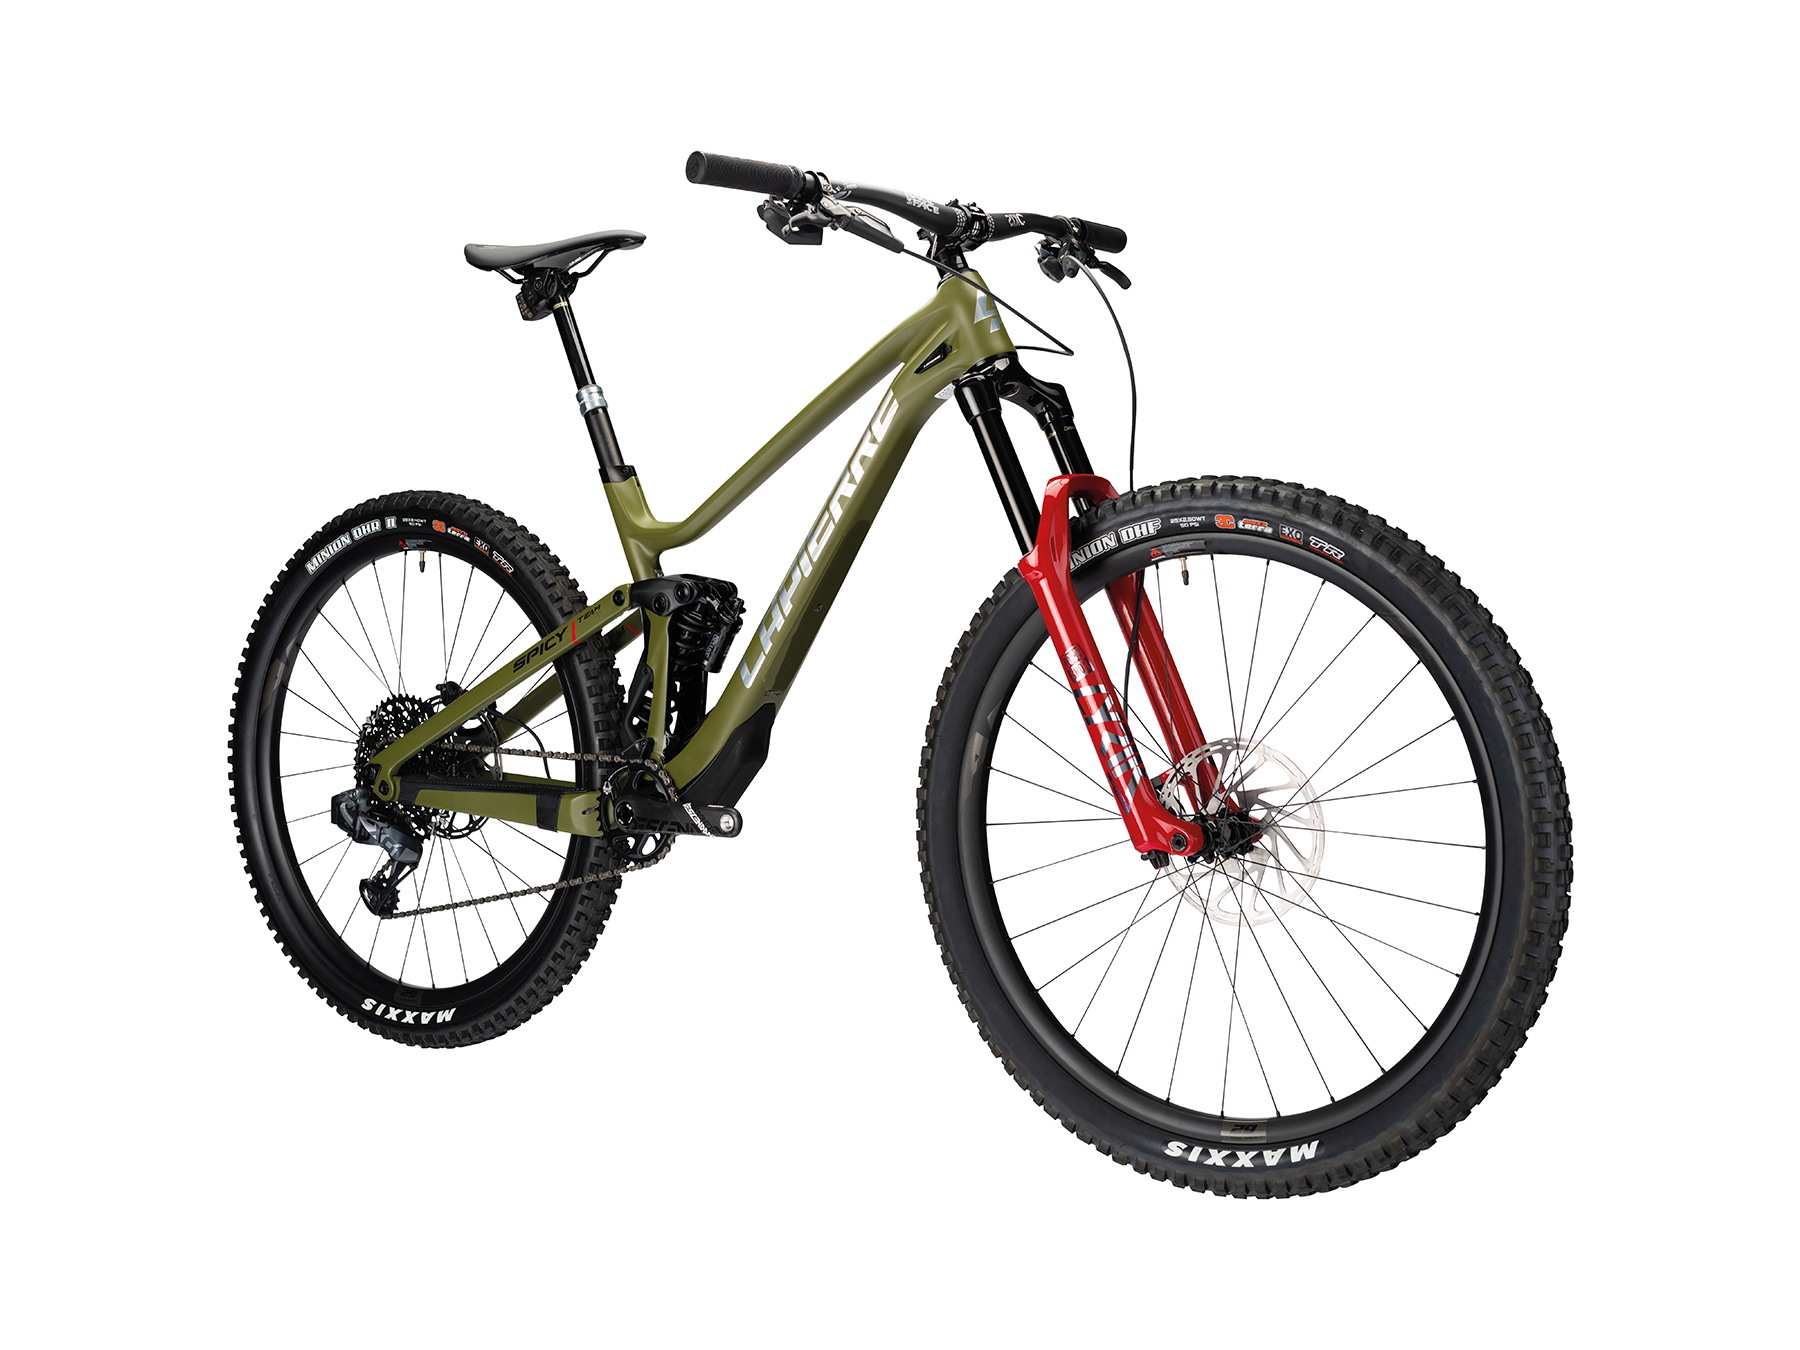 Lapierre Spicy Team Ultimate Enduro-Mountainbike 2